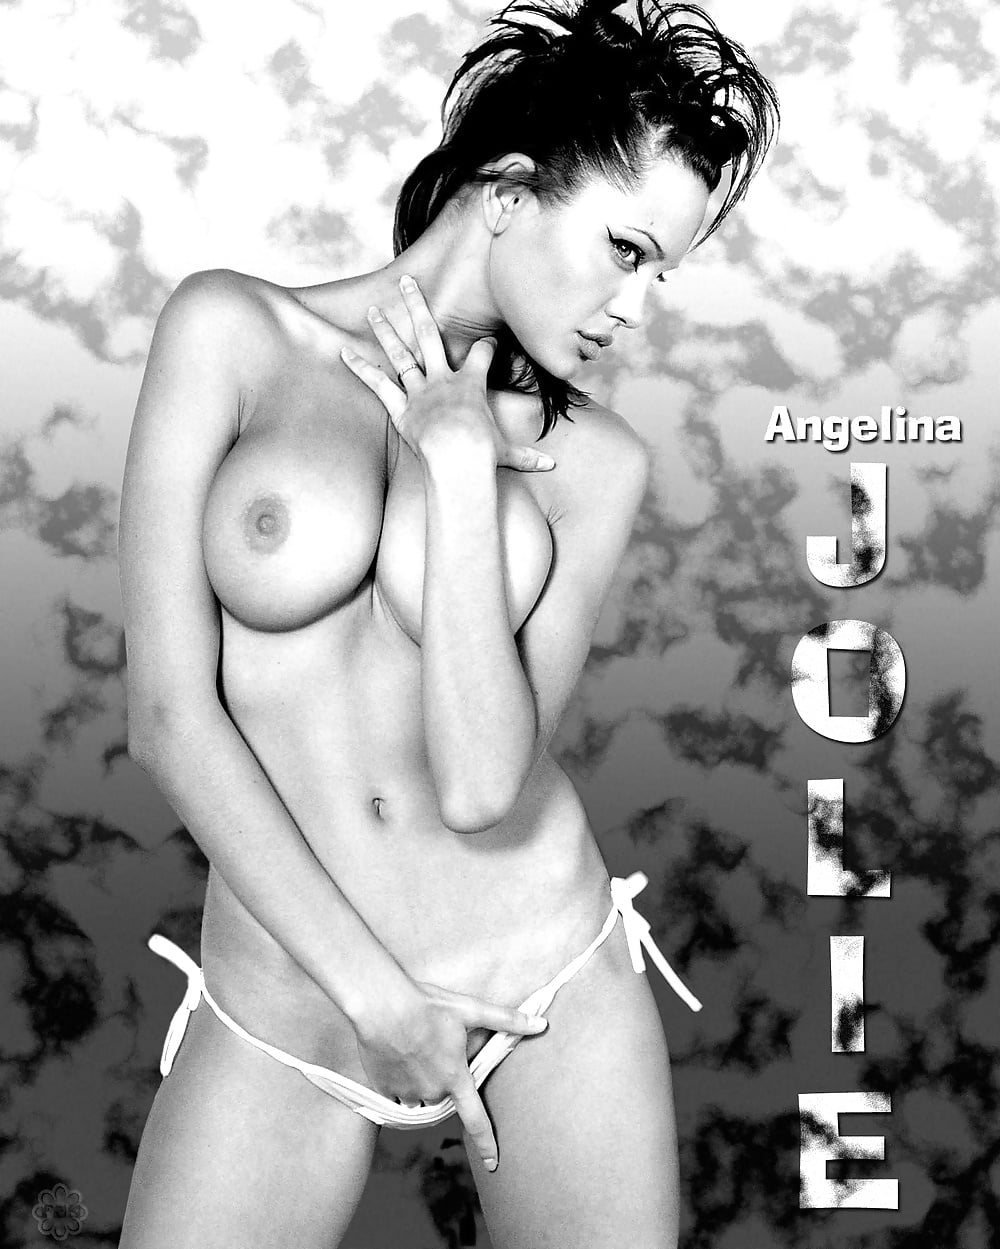 Angelina jolie naked wallpaper, sexy naked playboy women